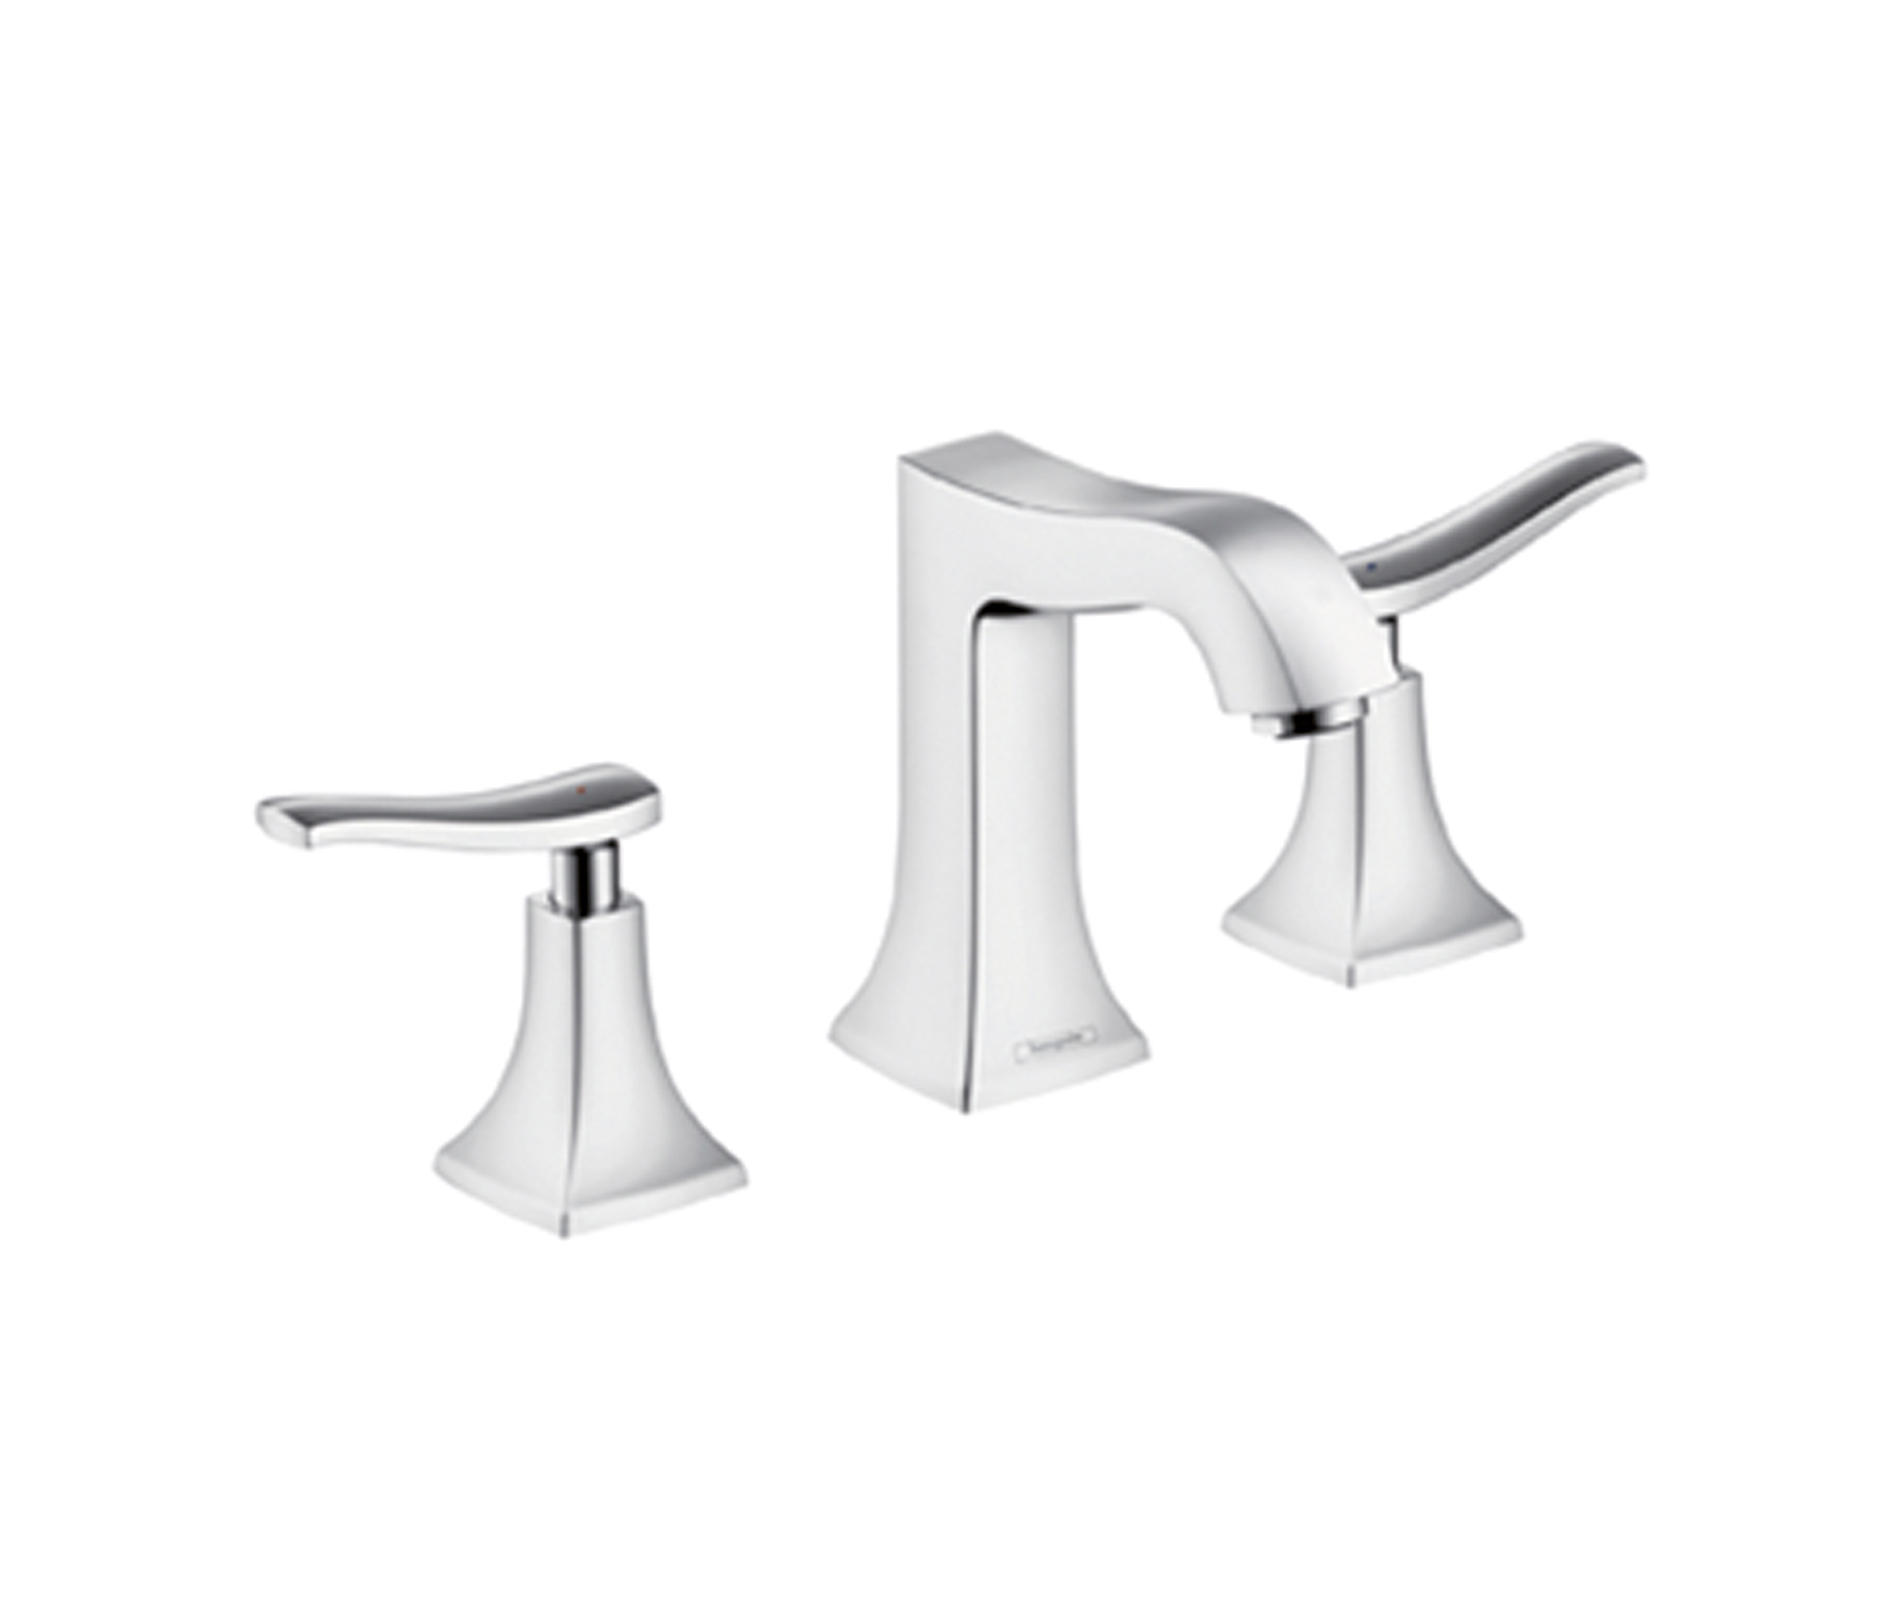 hansgrohe metris classic 3 hole basin mixer dn15 wash basin taps from hansgrohe architonic. Black Bedroom Furniture Sets. Home Design Ideas